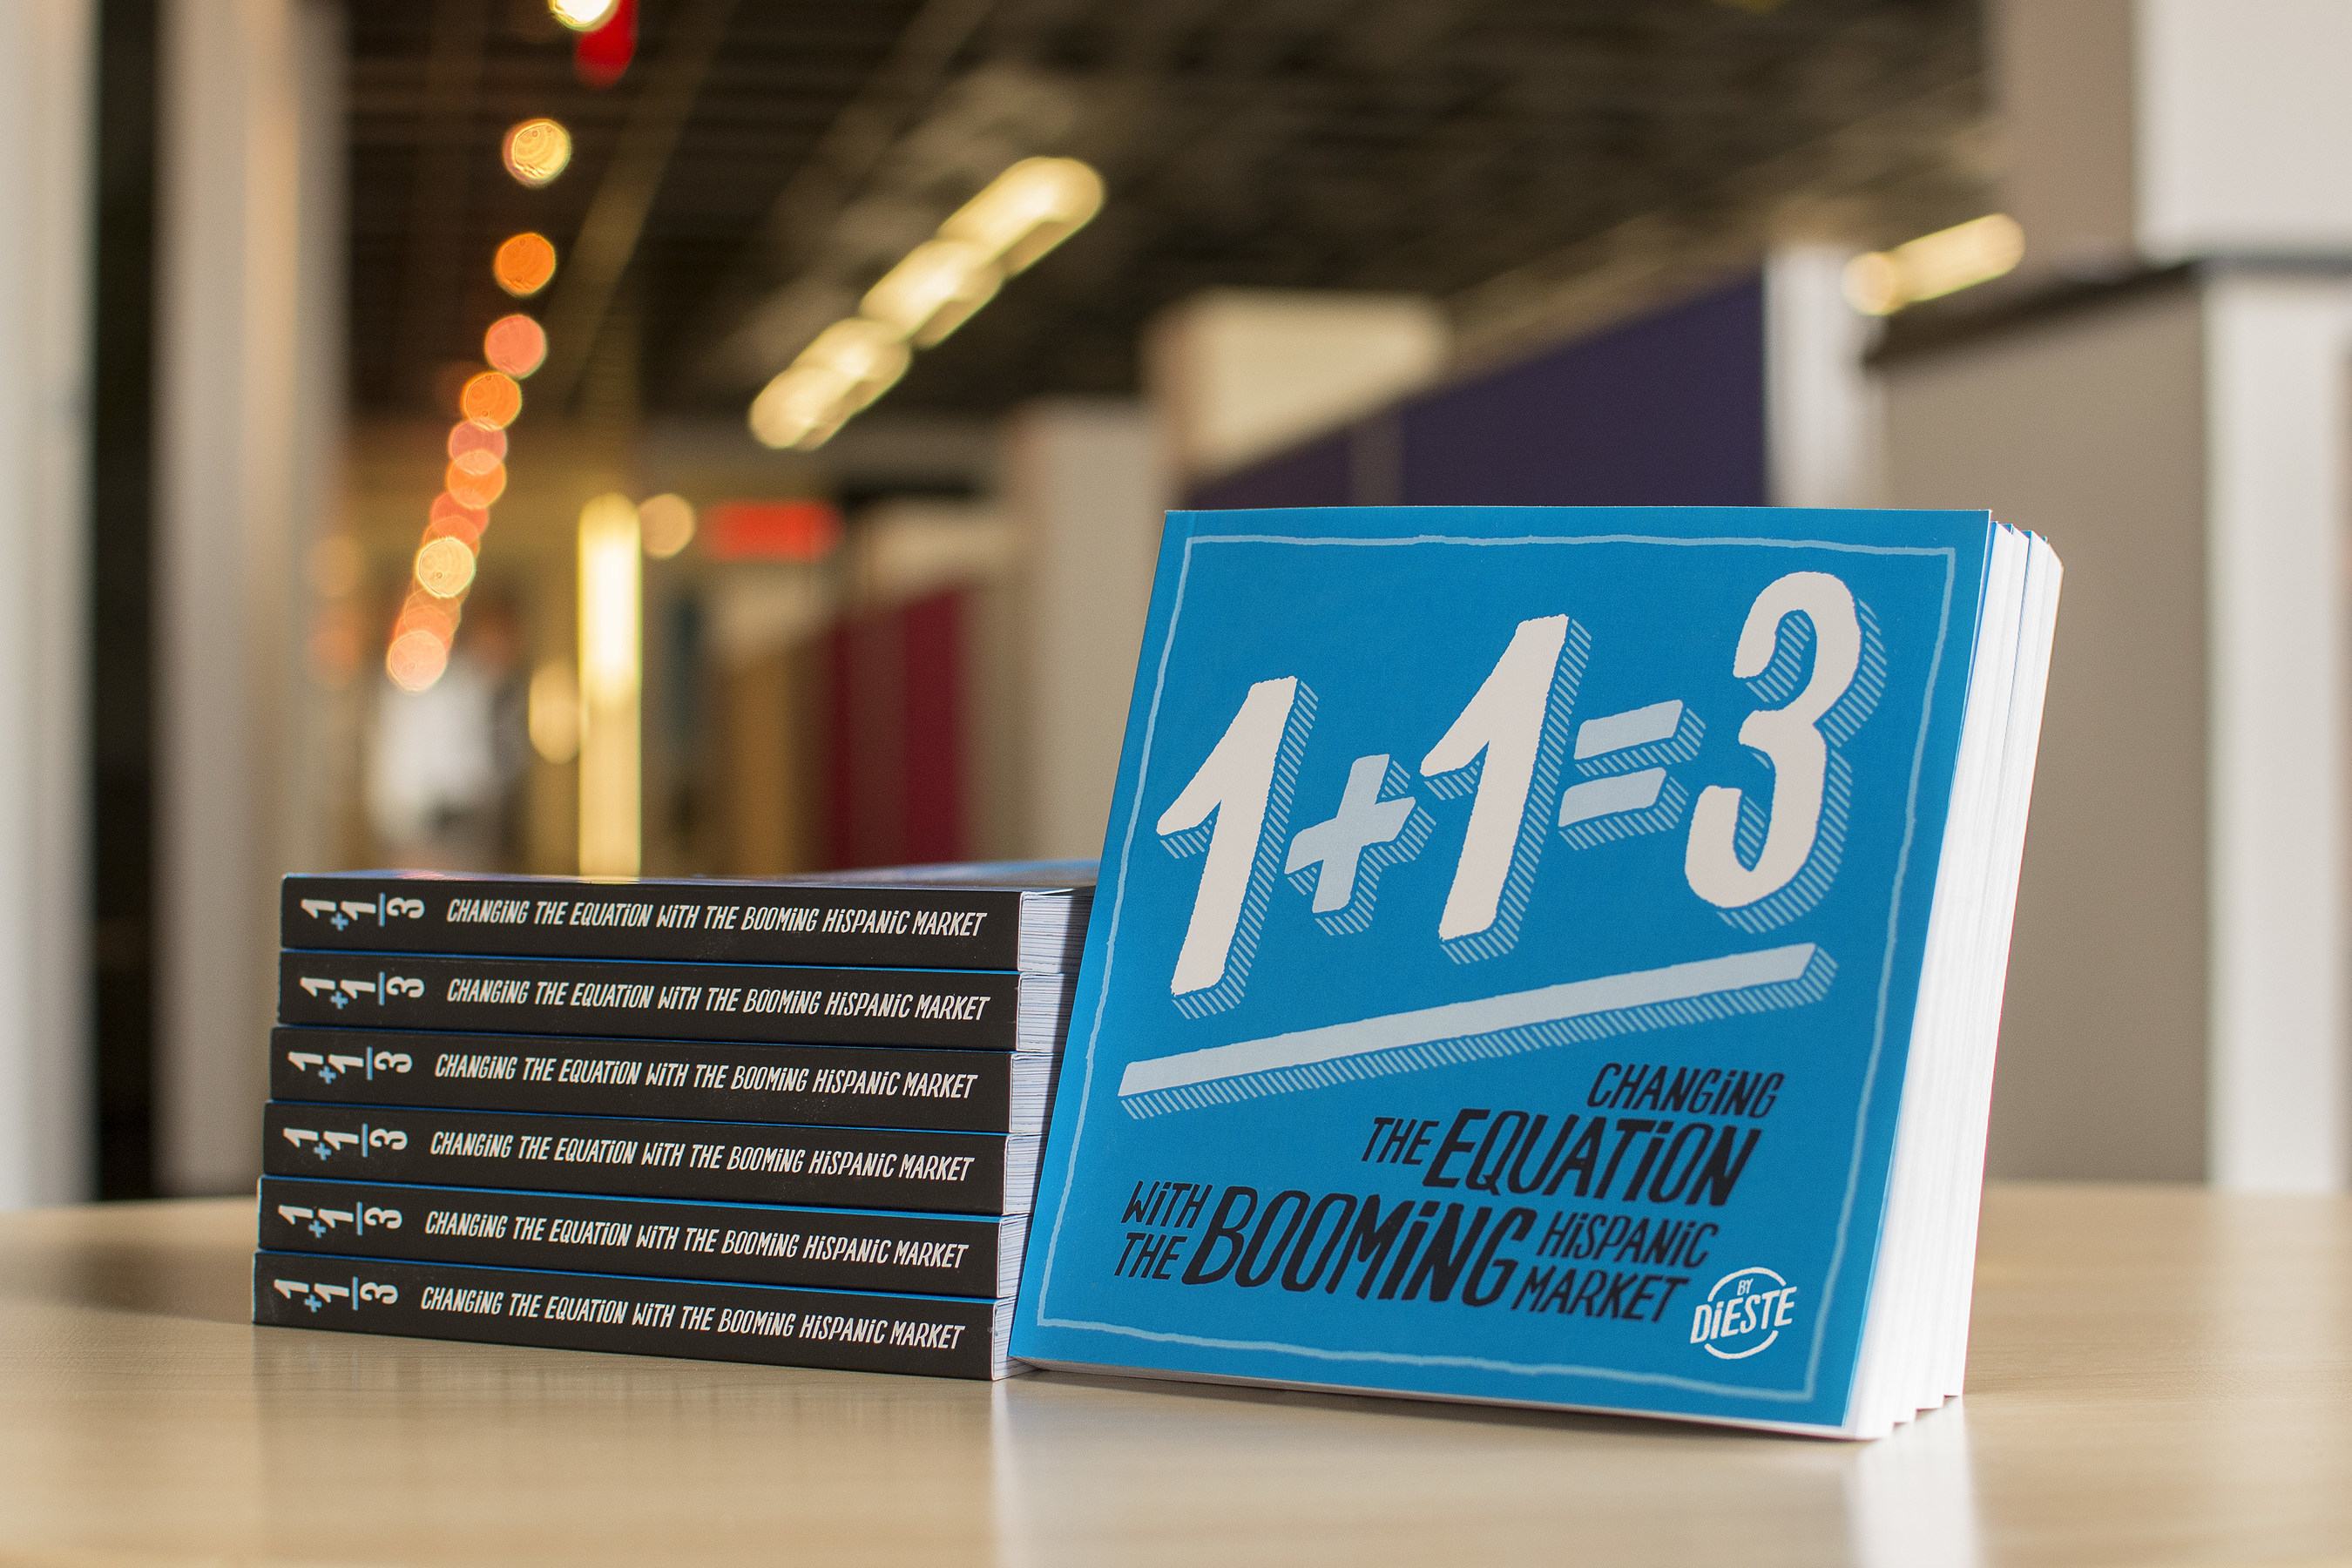 '1+1=3 Changing The Equation With The Booming Hispanic Market' was authored as a collaboration between several Dieste employees.